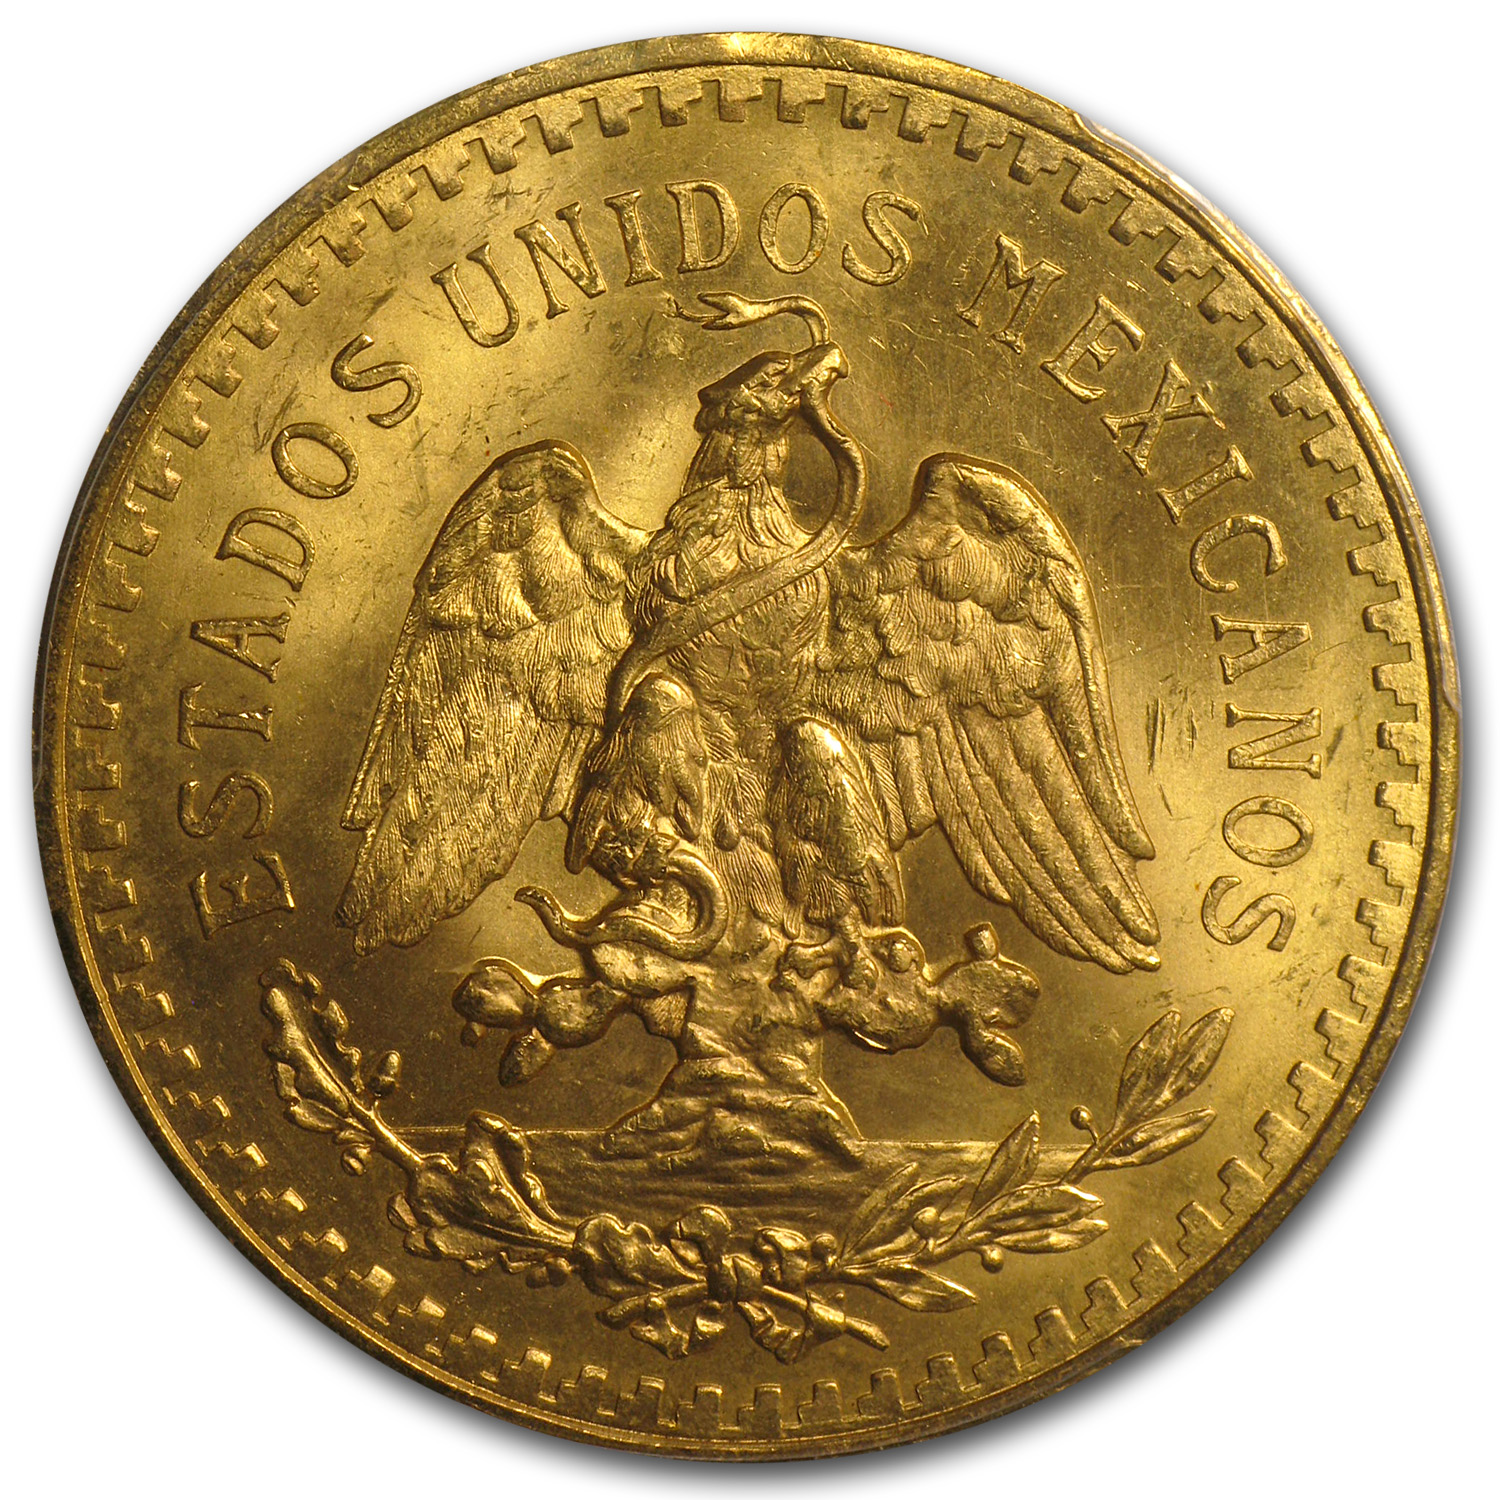 Mexico 1931 50 Pesos Gold Coin - MS-65 PCGS